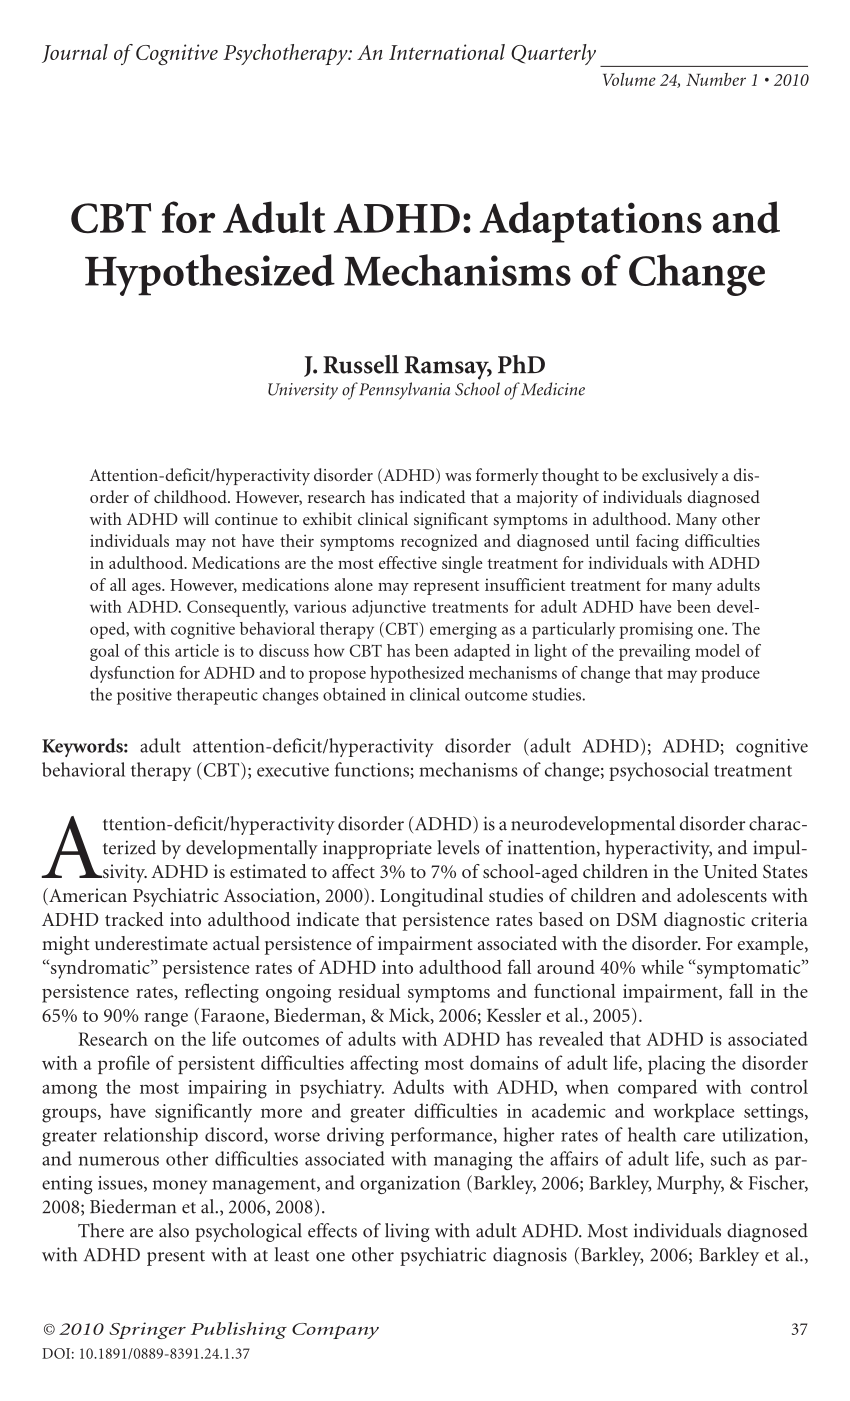 CBT For Adult ADHD Adaptations And PDF Download Available